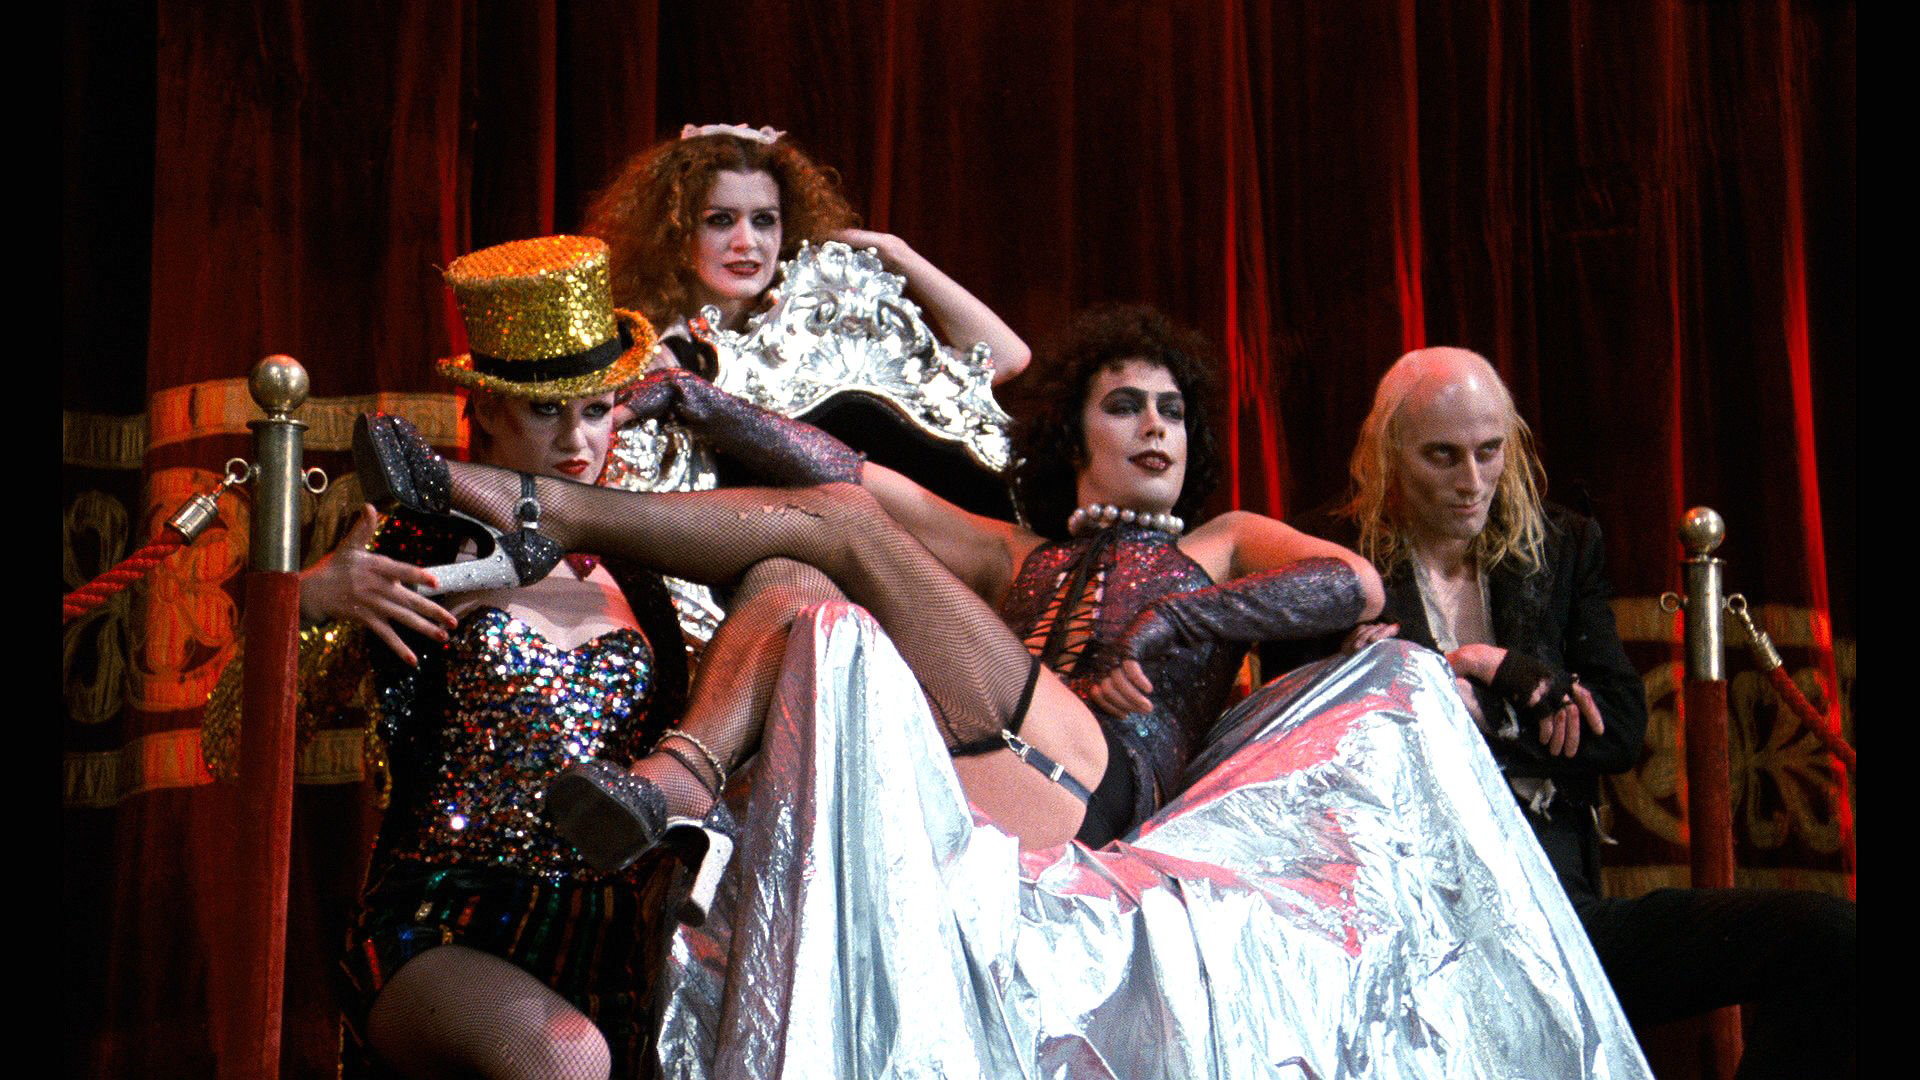 campy movies rocky horror